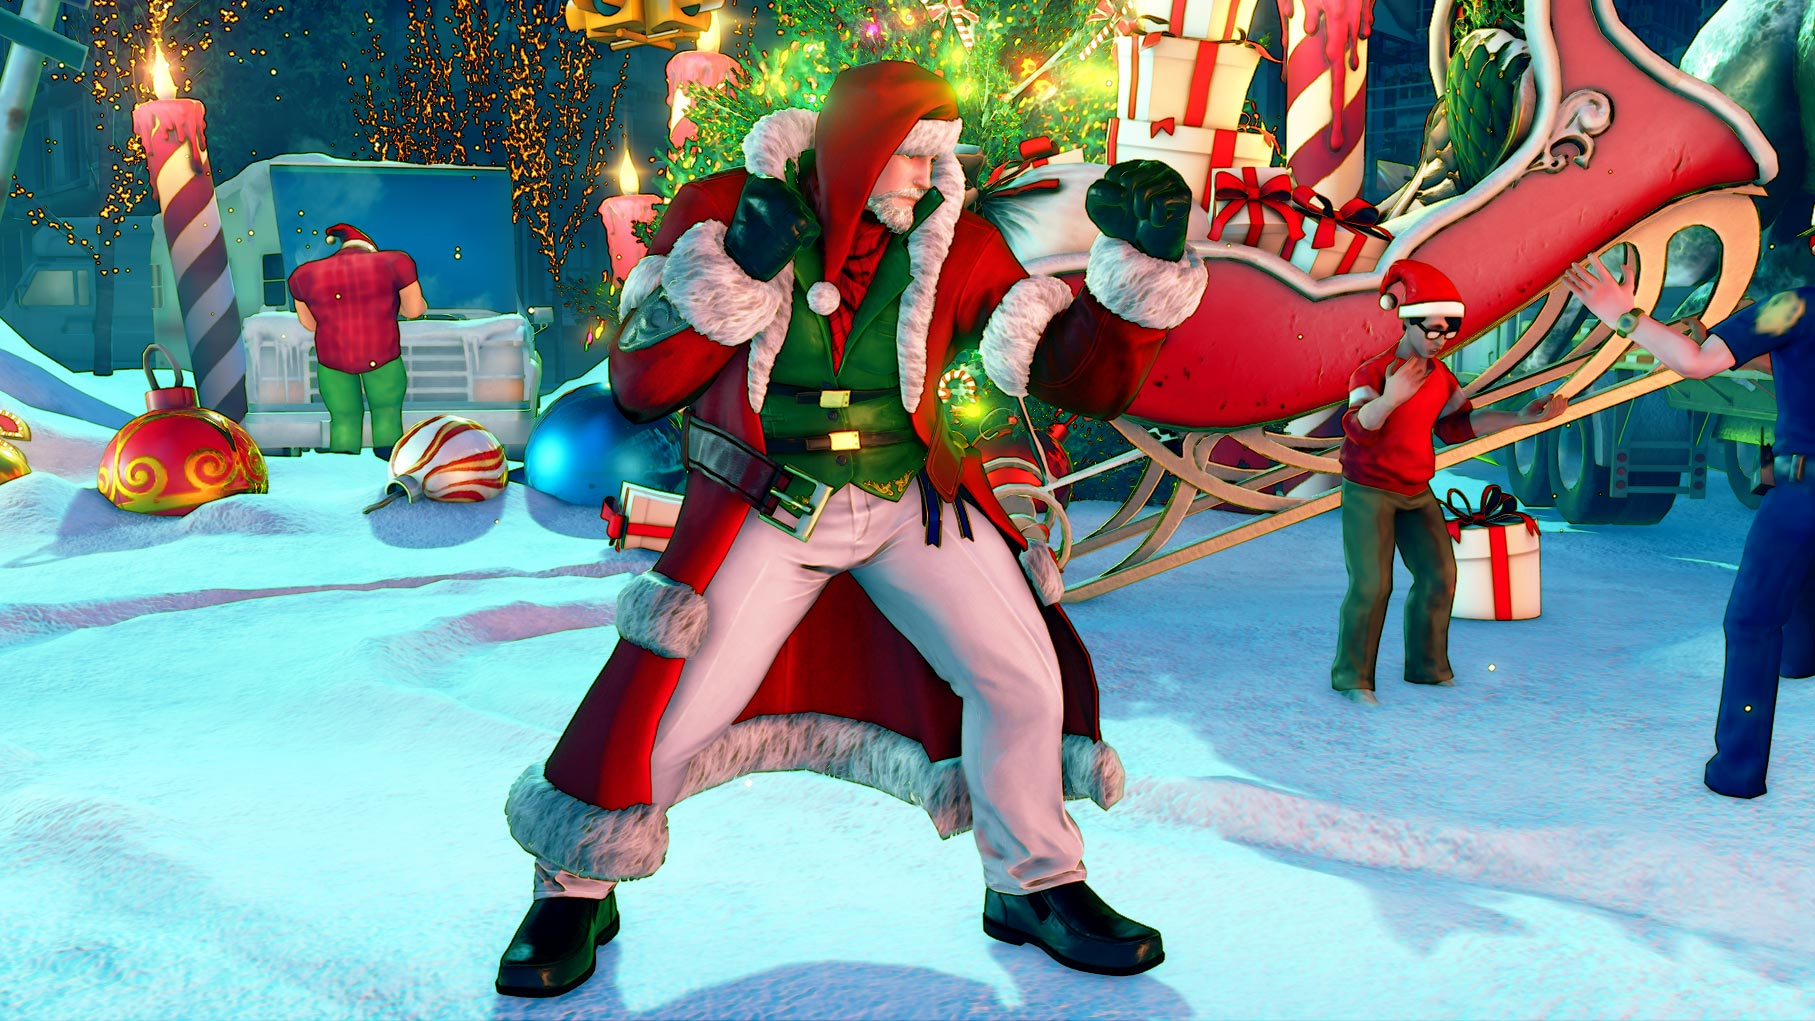 New Street Fighter 5 holiday costumes 11 out of 12 image gallery